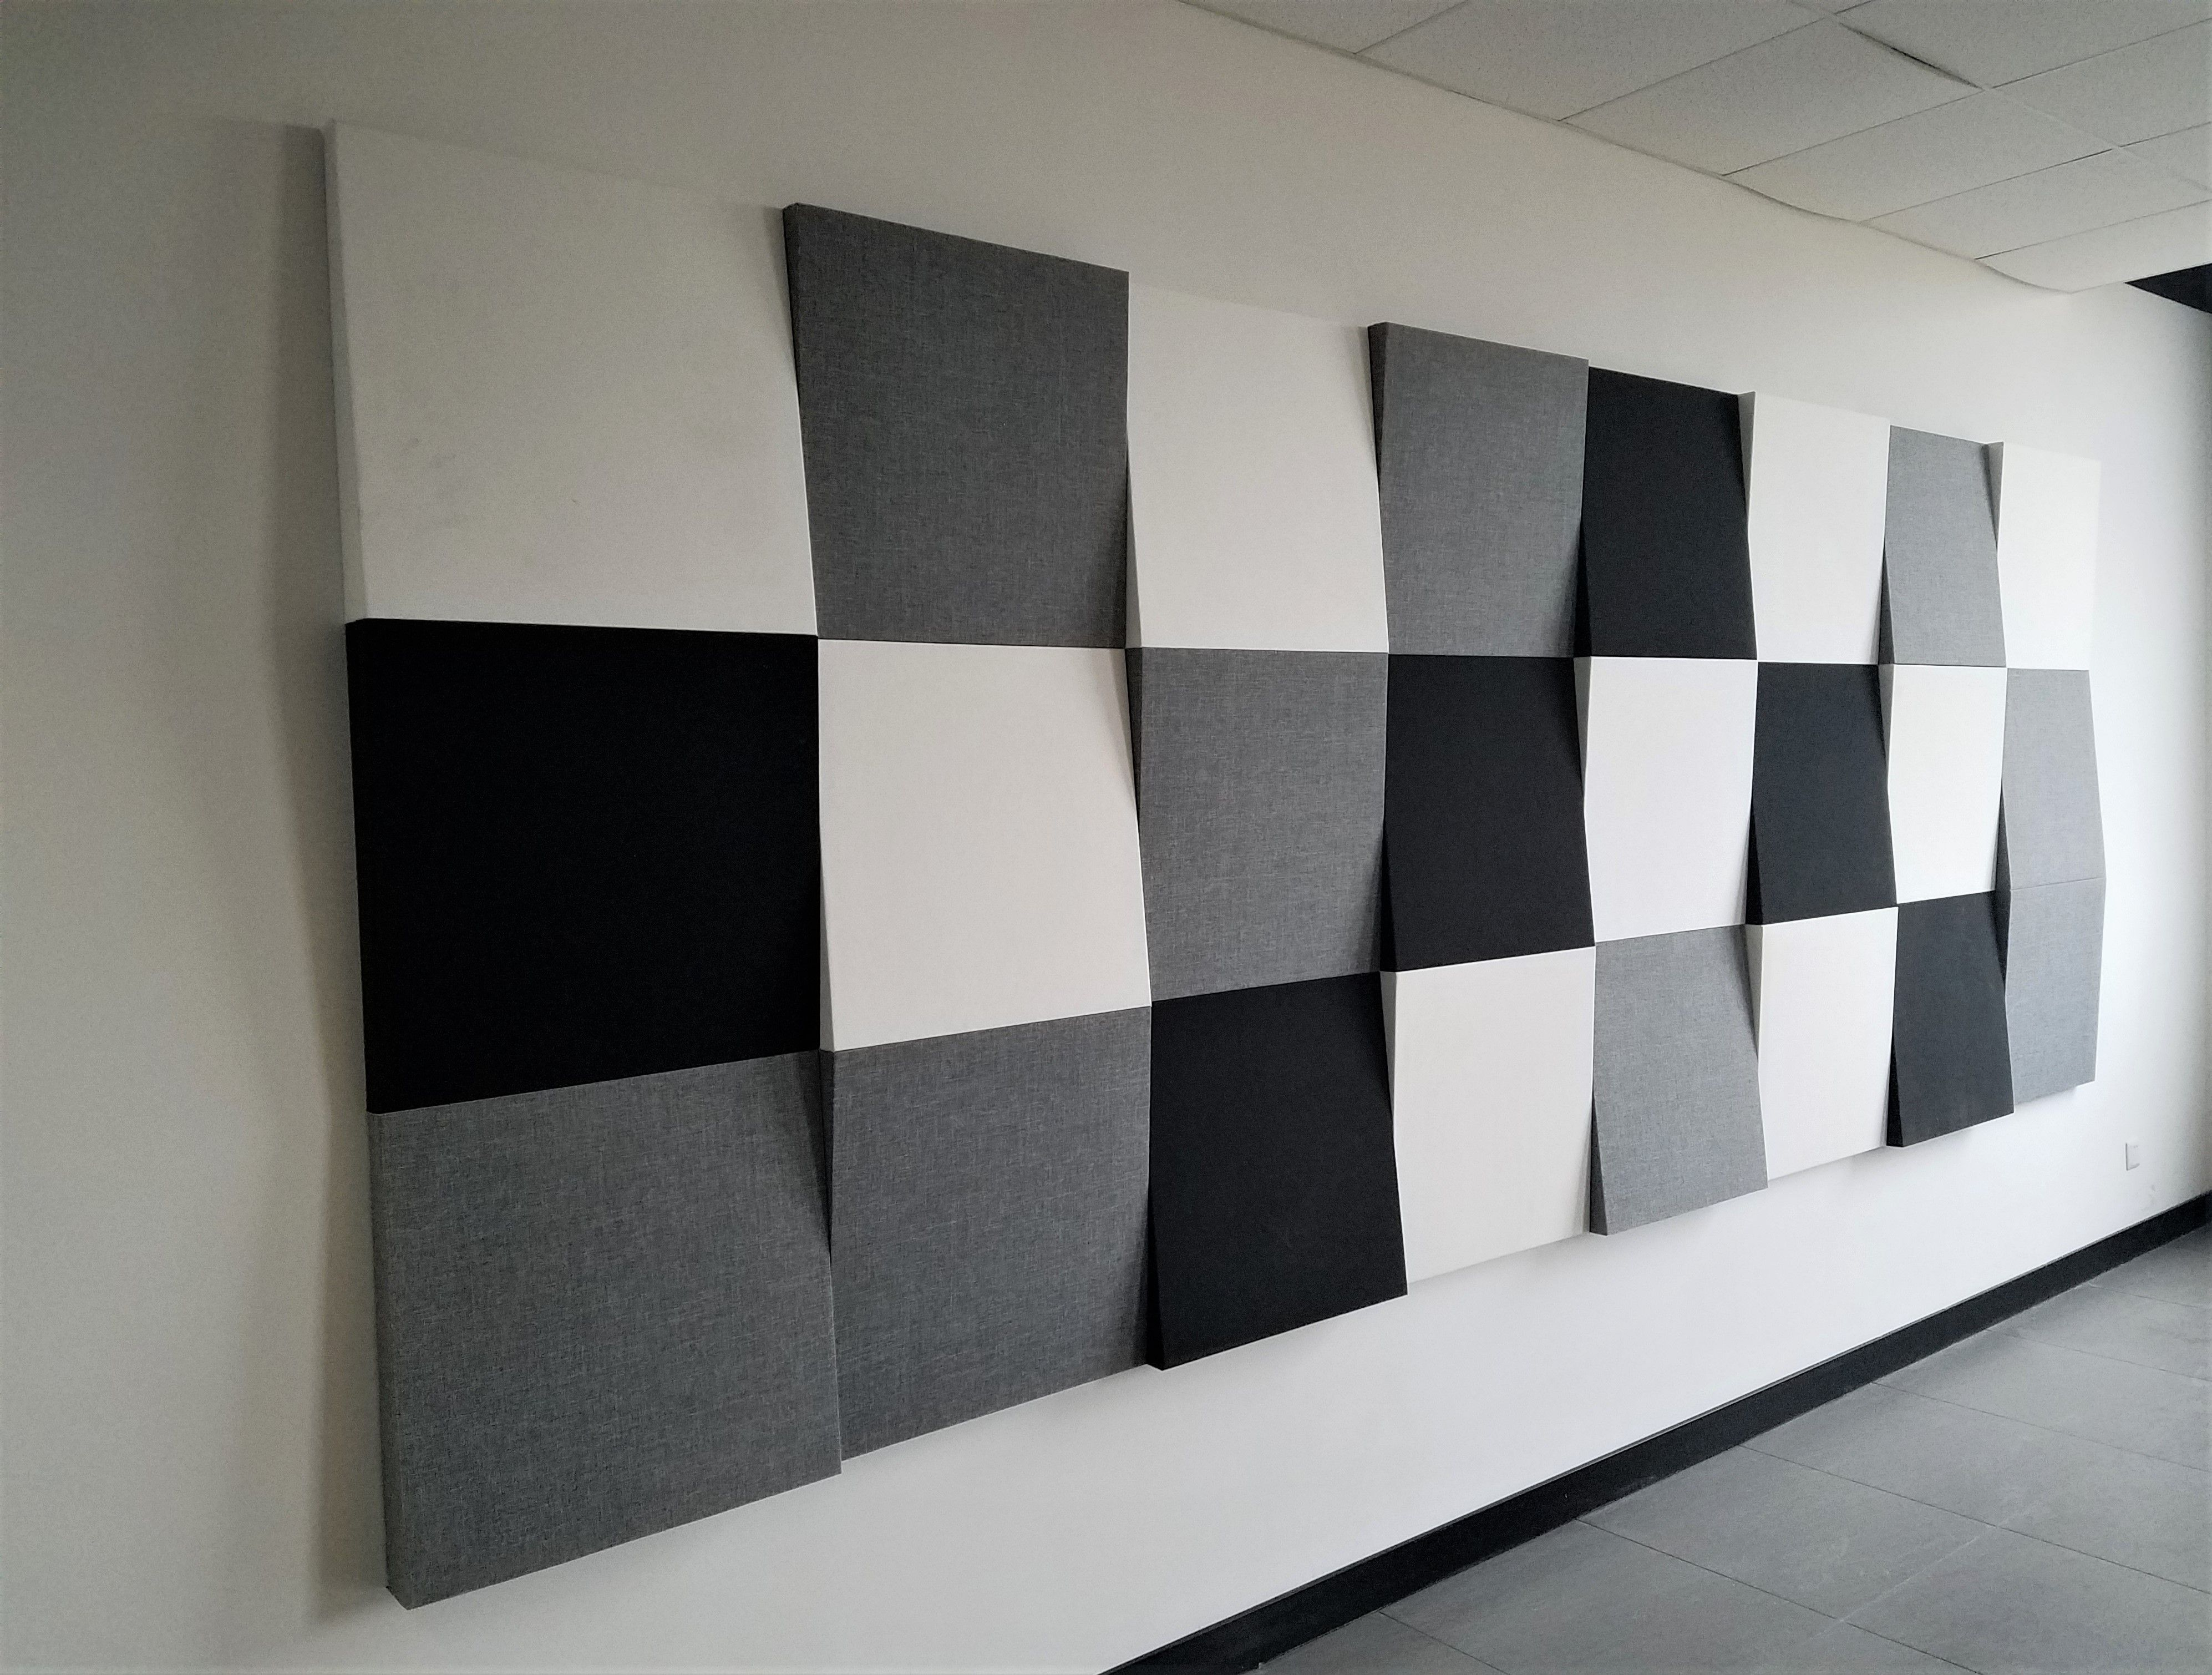 Acoustic Panels The Best in Sound Absorption